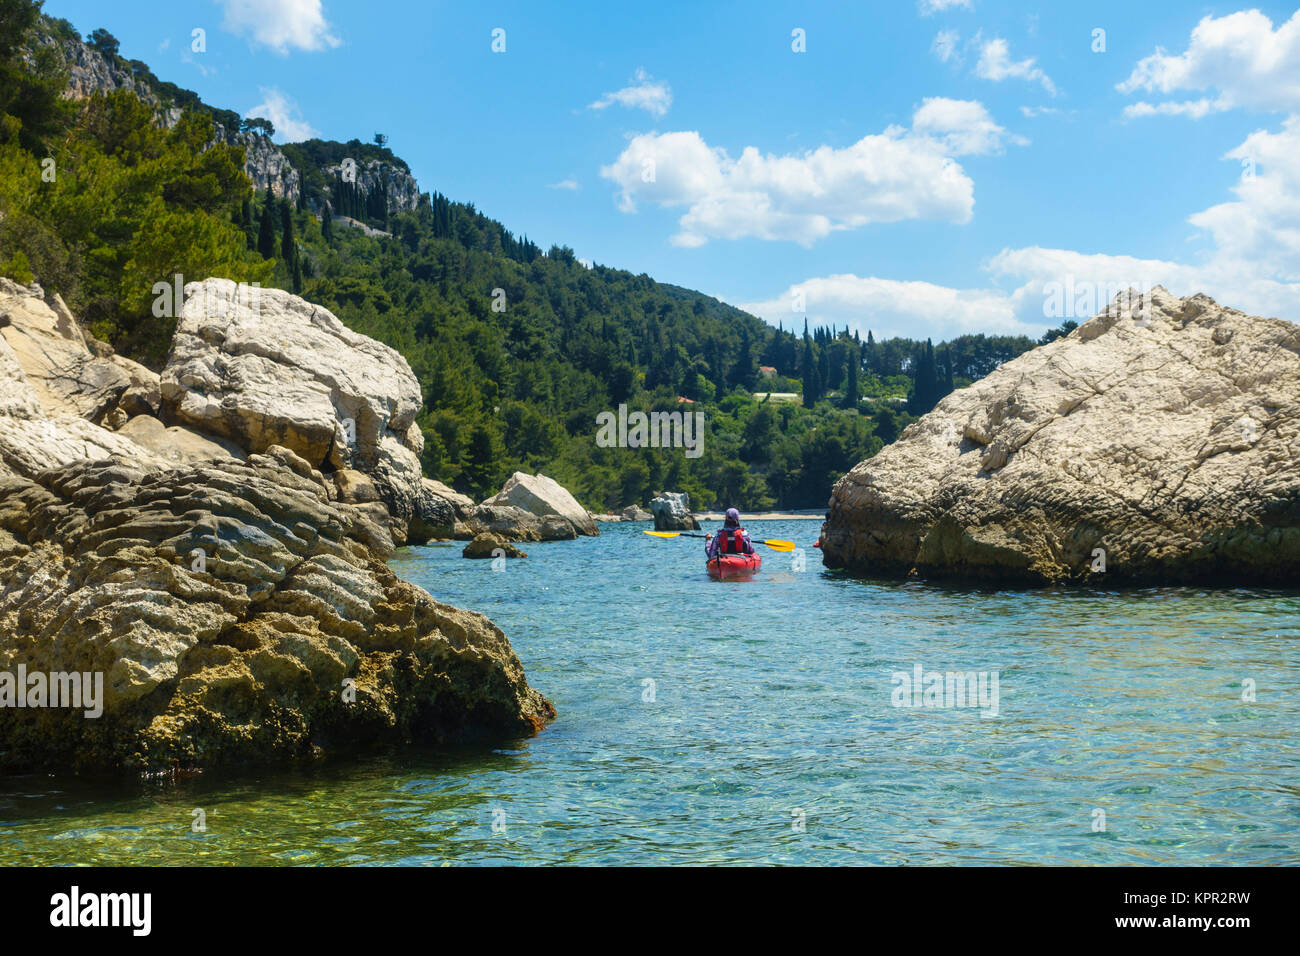 Sea kayaking near Split, Croatia - Stock Image